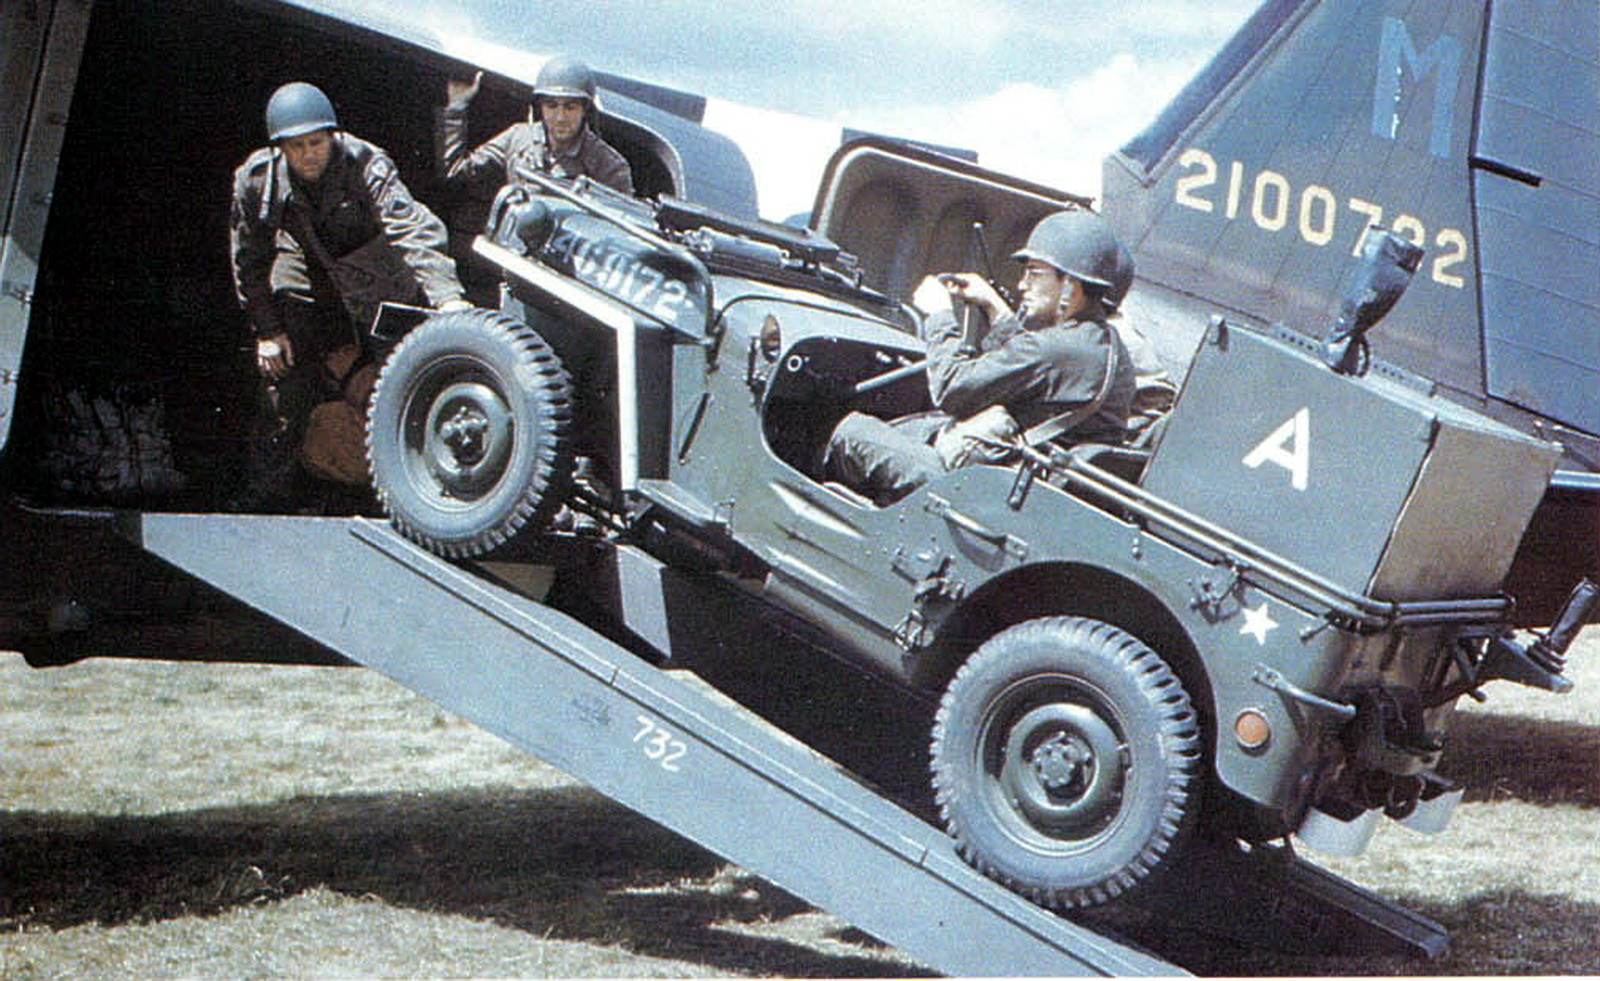 jeep aboard transport aircraft.jpg